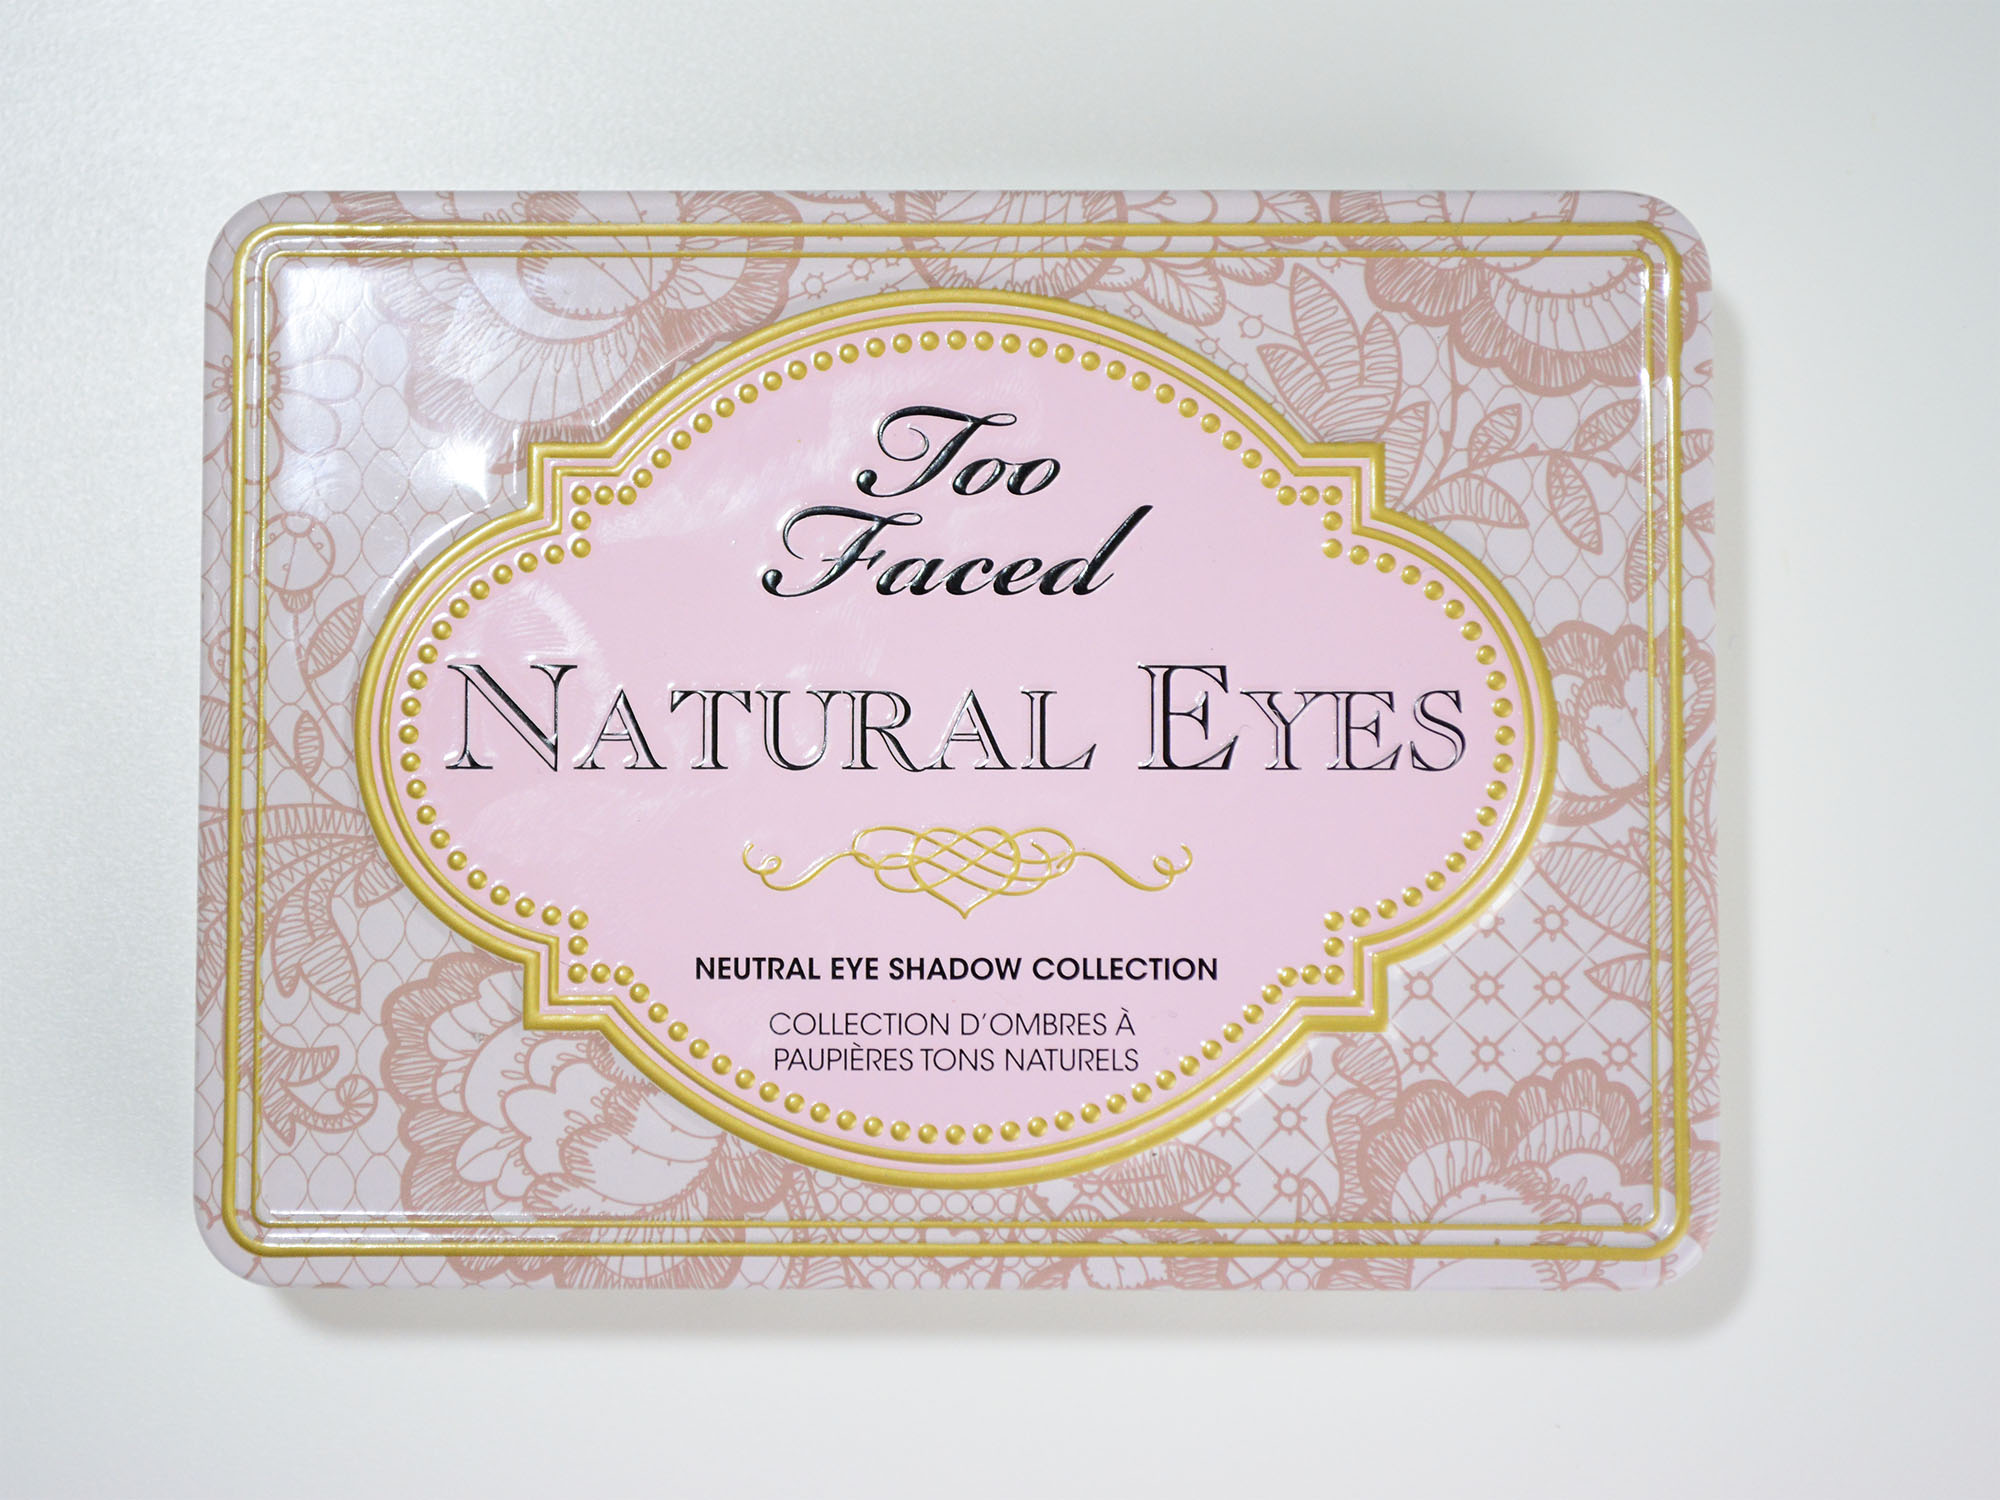 Two Faced Natural Eye Palette Review